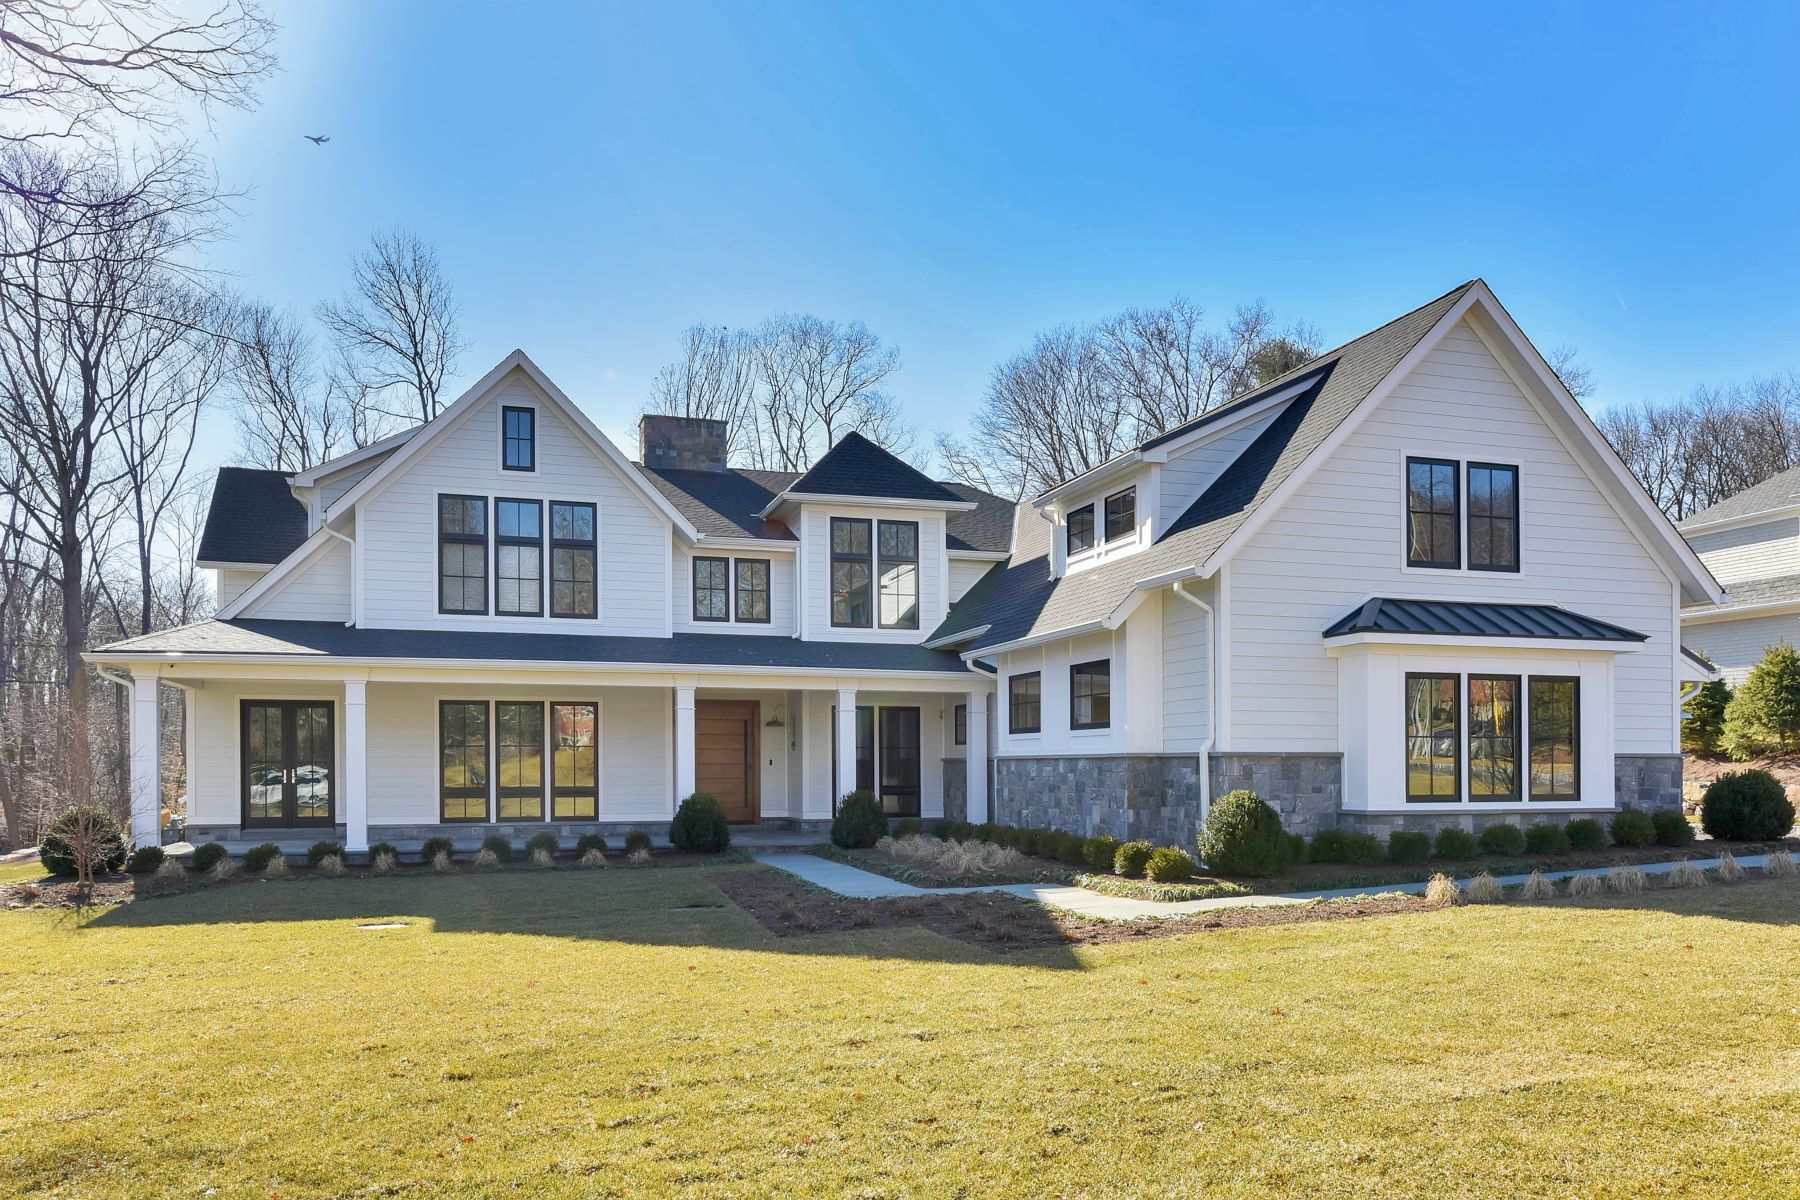 Single Family Home for Sale at Custom Modern 7000=Farm House 56 Dimmig Rd. Upper Saddle River, New Jersey 07458 United States